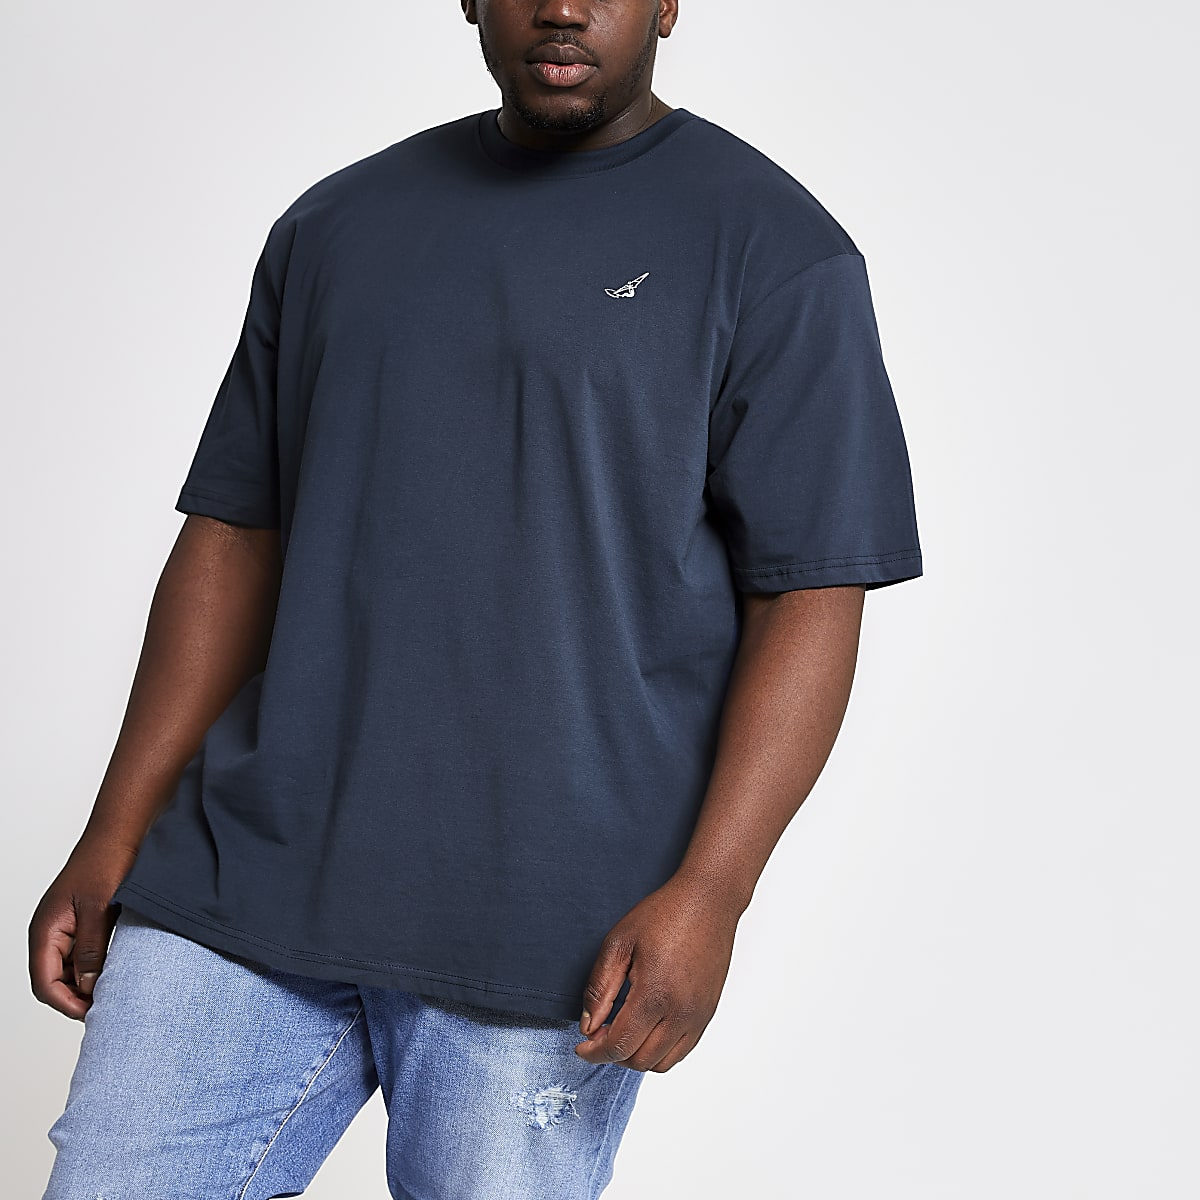 Only & Sons Big and Tall navy T-shirt